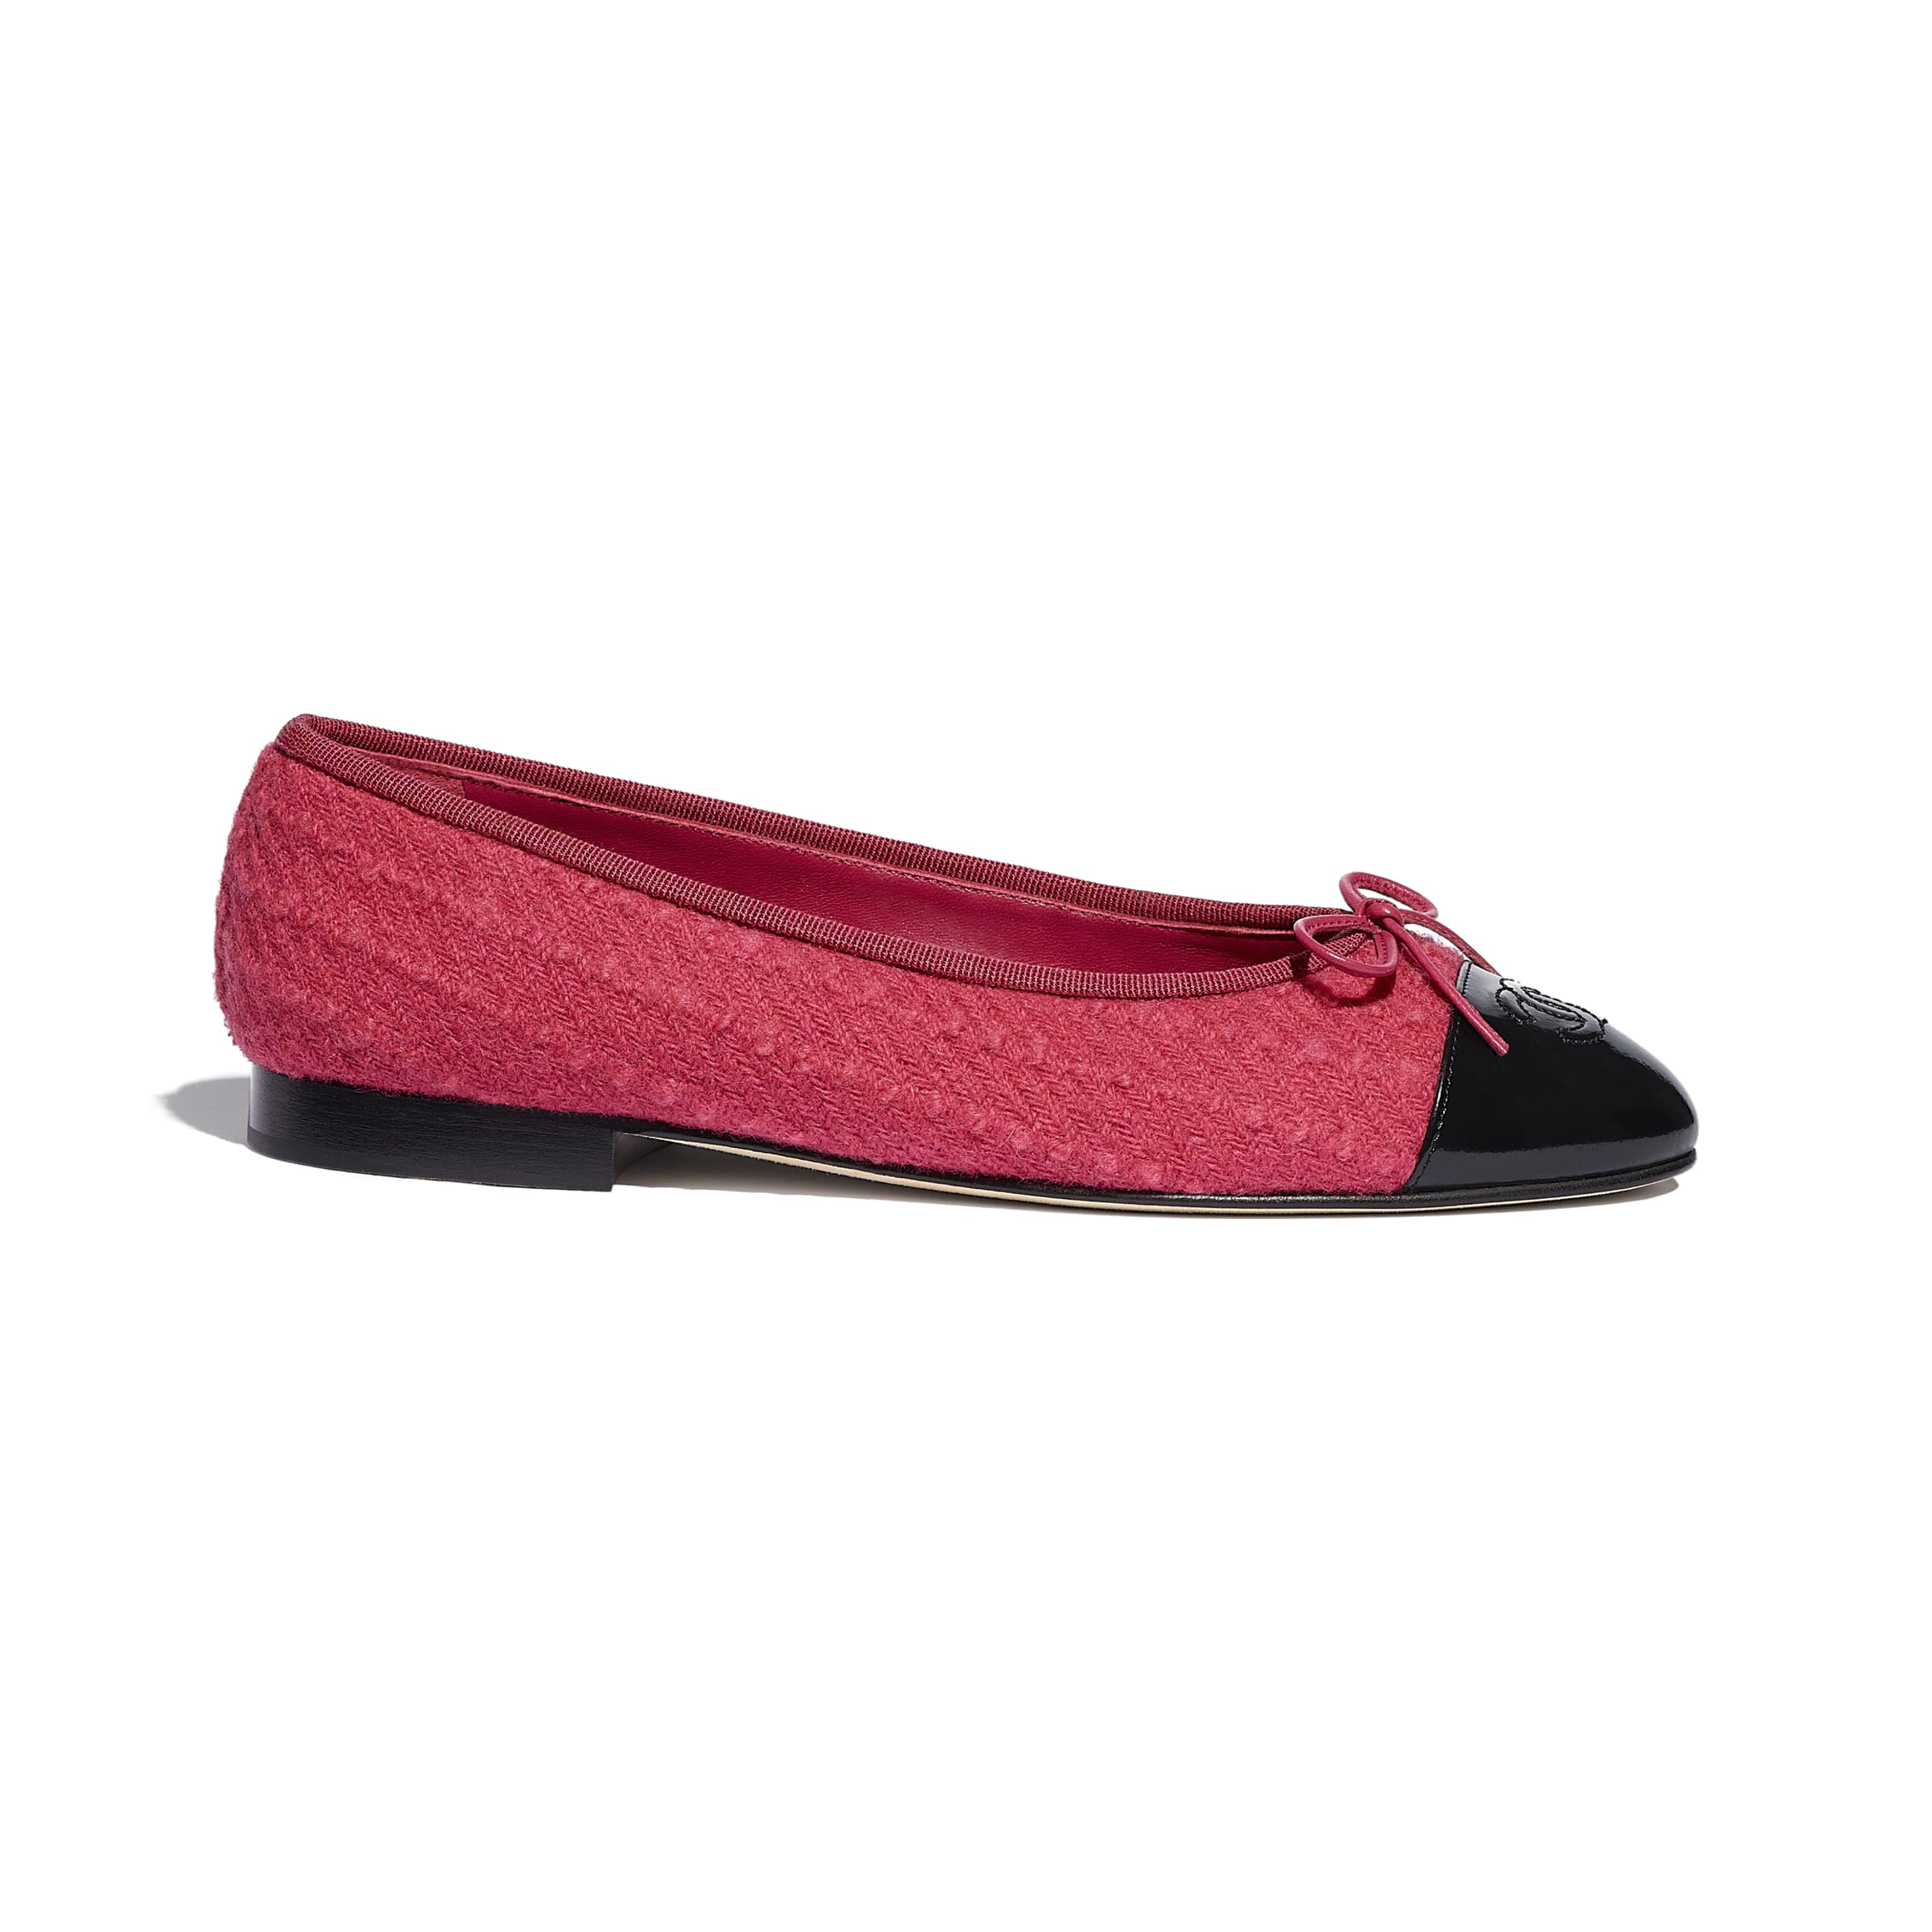 Flats - Pink & Black - Tweed & Calfskin - CHANEL - Default view - see standard sized version